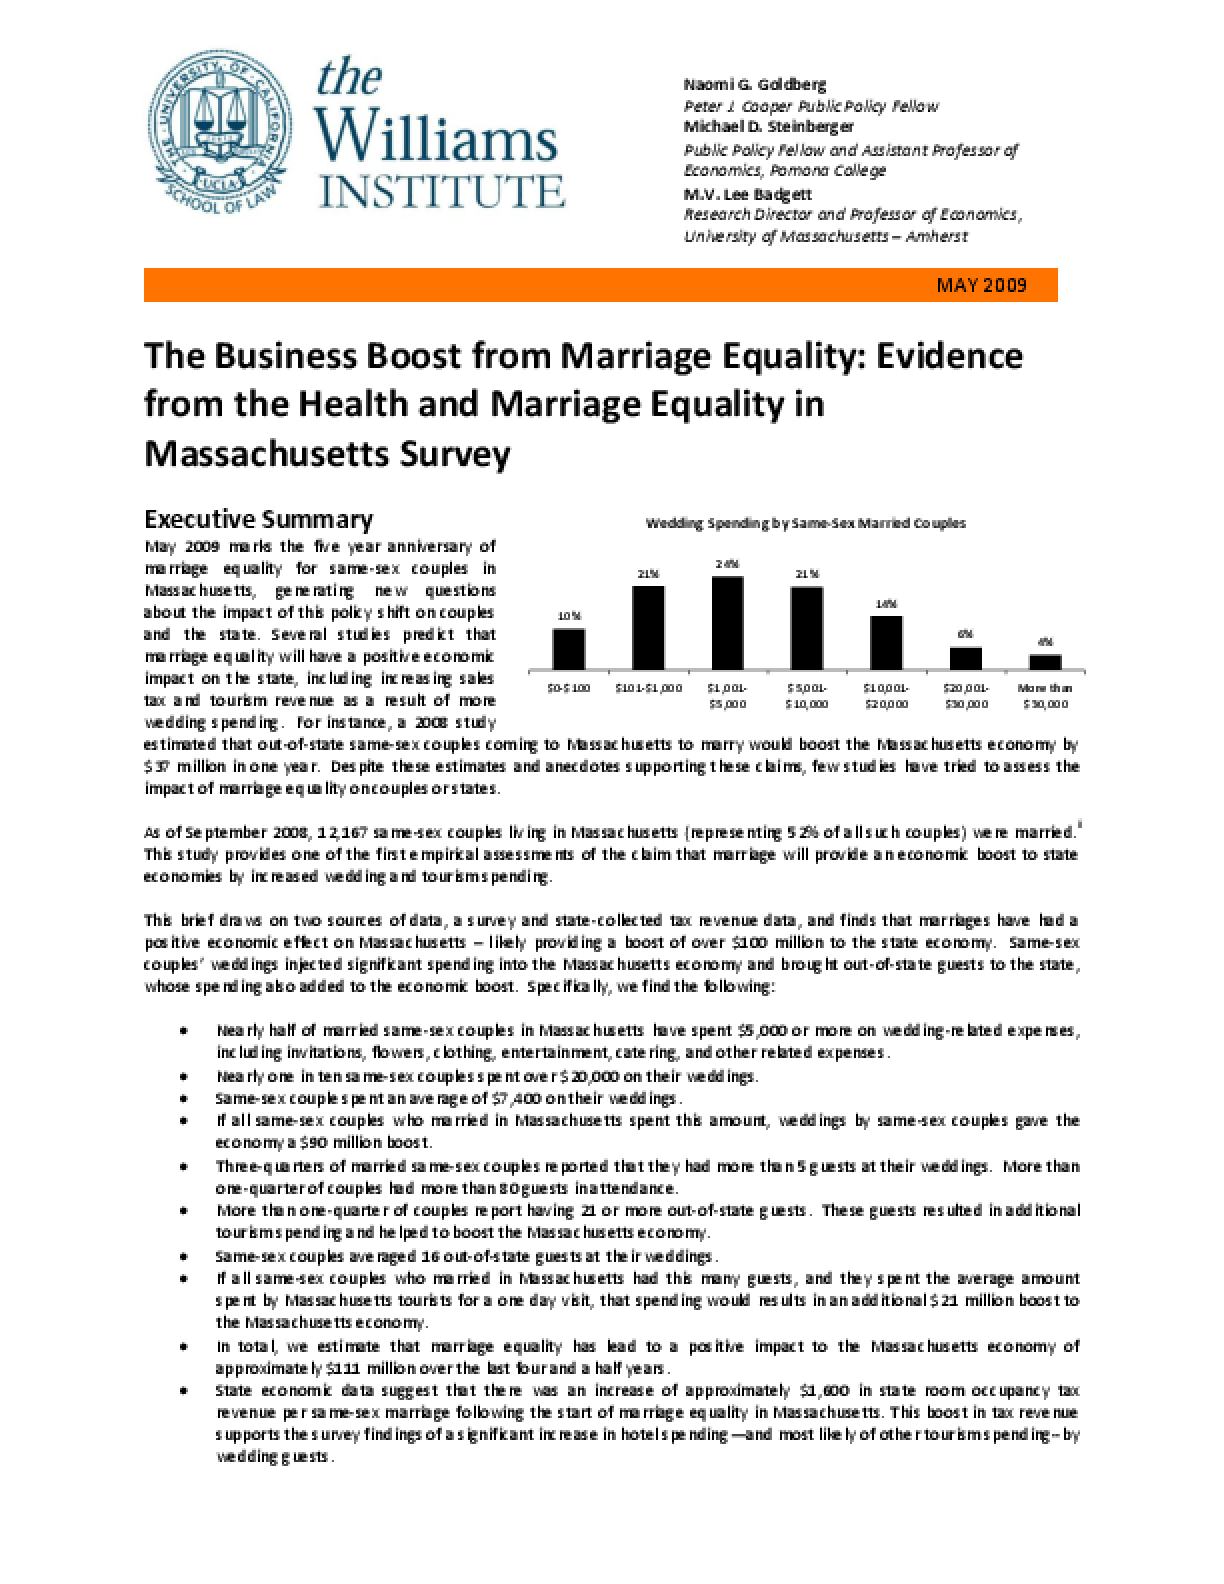 The Business Boost from Marriage Equality: Evidence from the Health and Marriage Equality in Massachusetts Survey